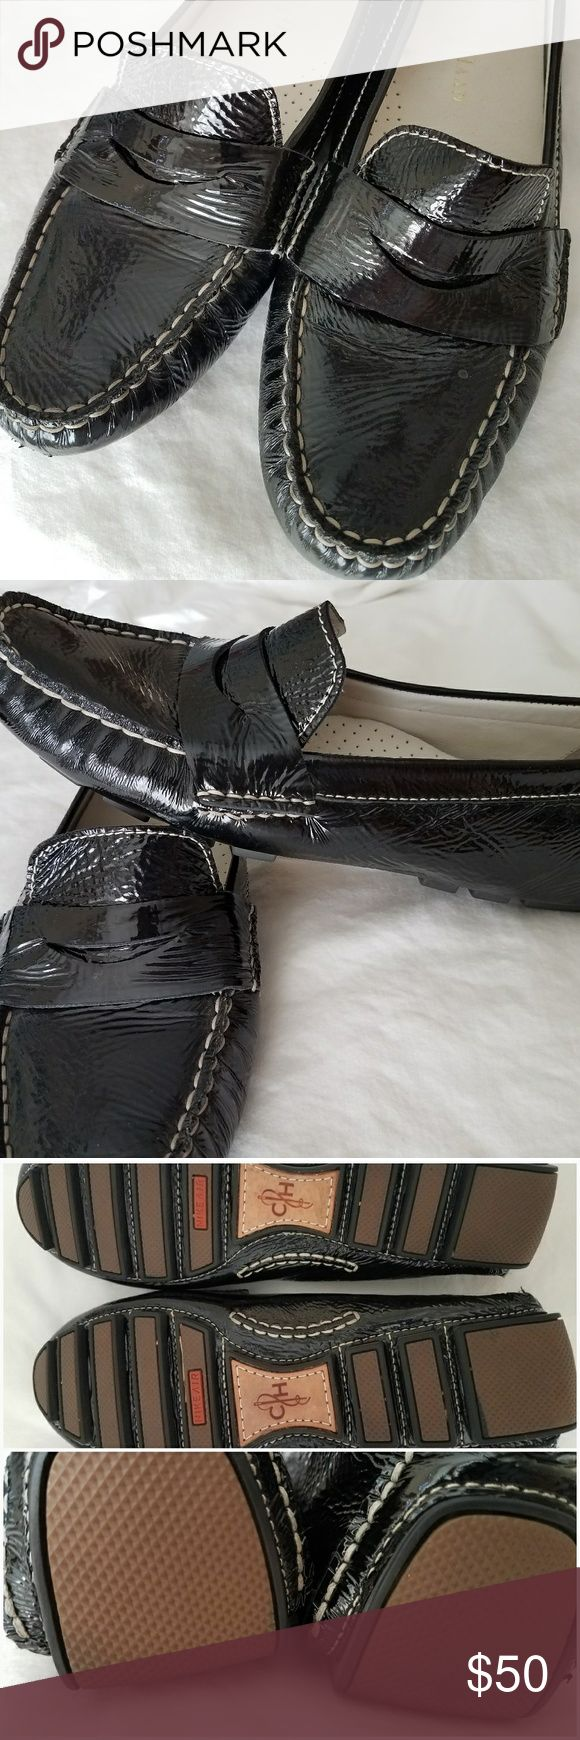 Cole Hann Patent Leather Loafers So cute! These Cole Hann loafers feature the comfort of Nike Air technology.  Some wear evident on the inside, (logo is partially worn away), but everything else is in excellent condition! Size 7.5 B. Cole Haan Shoes Flats & Loafers